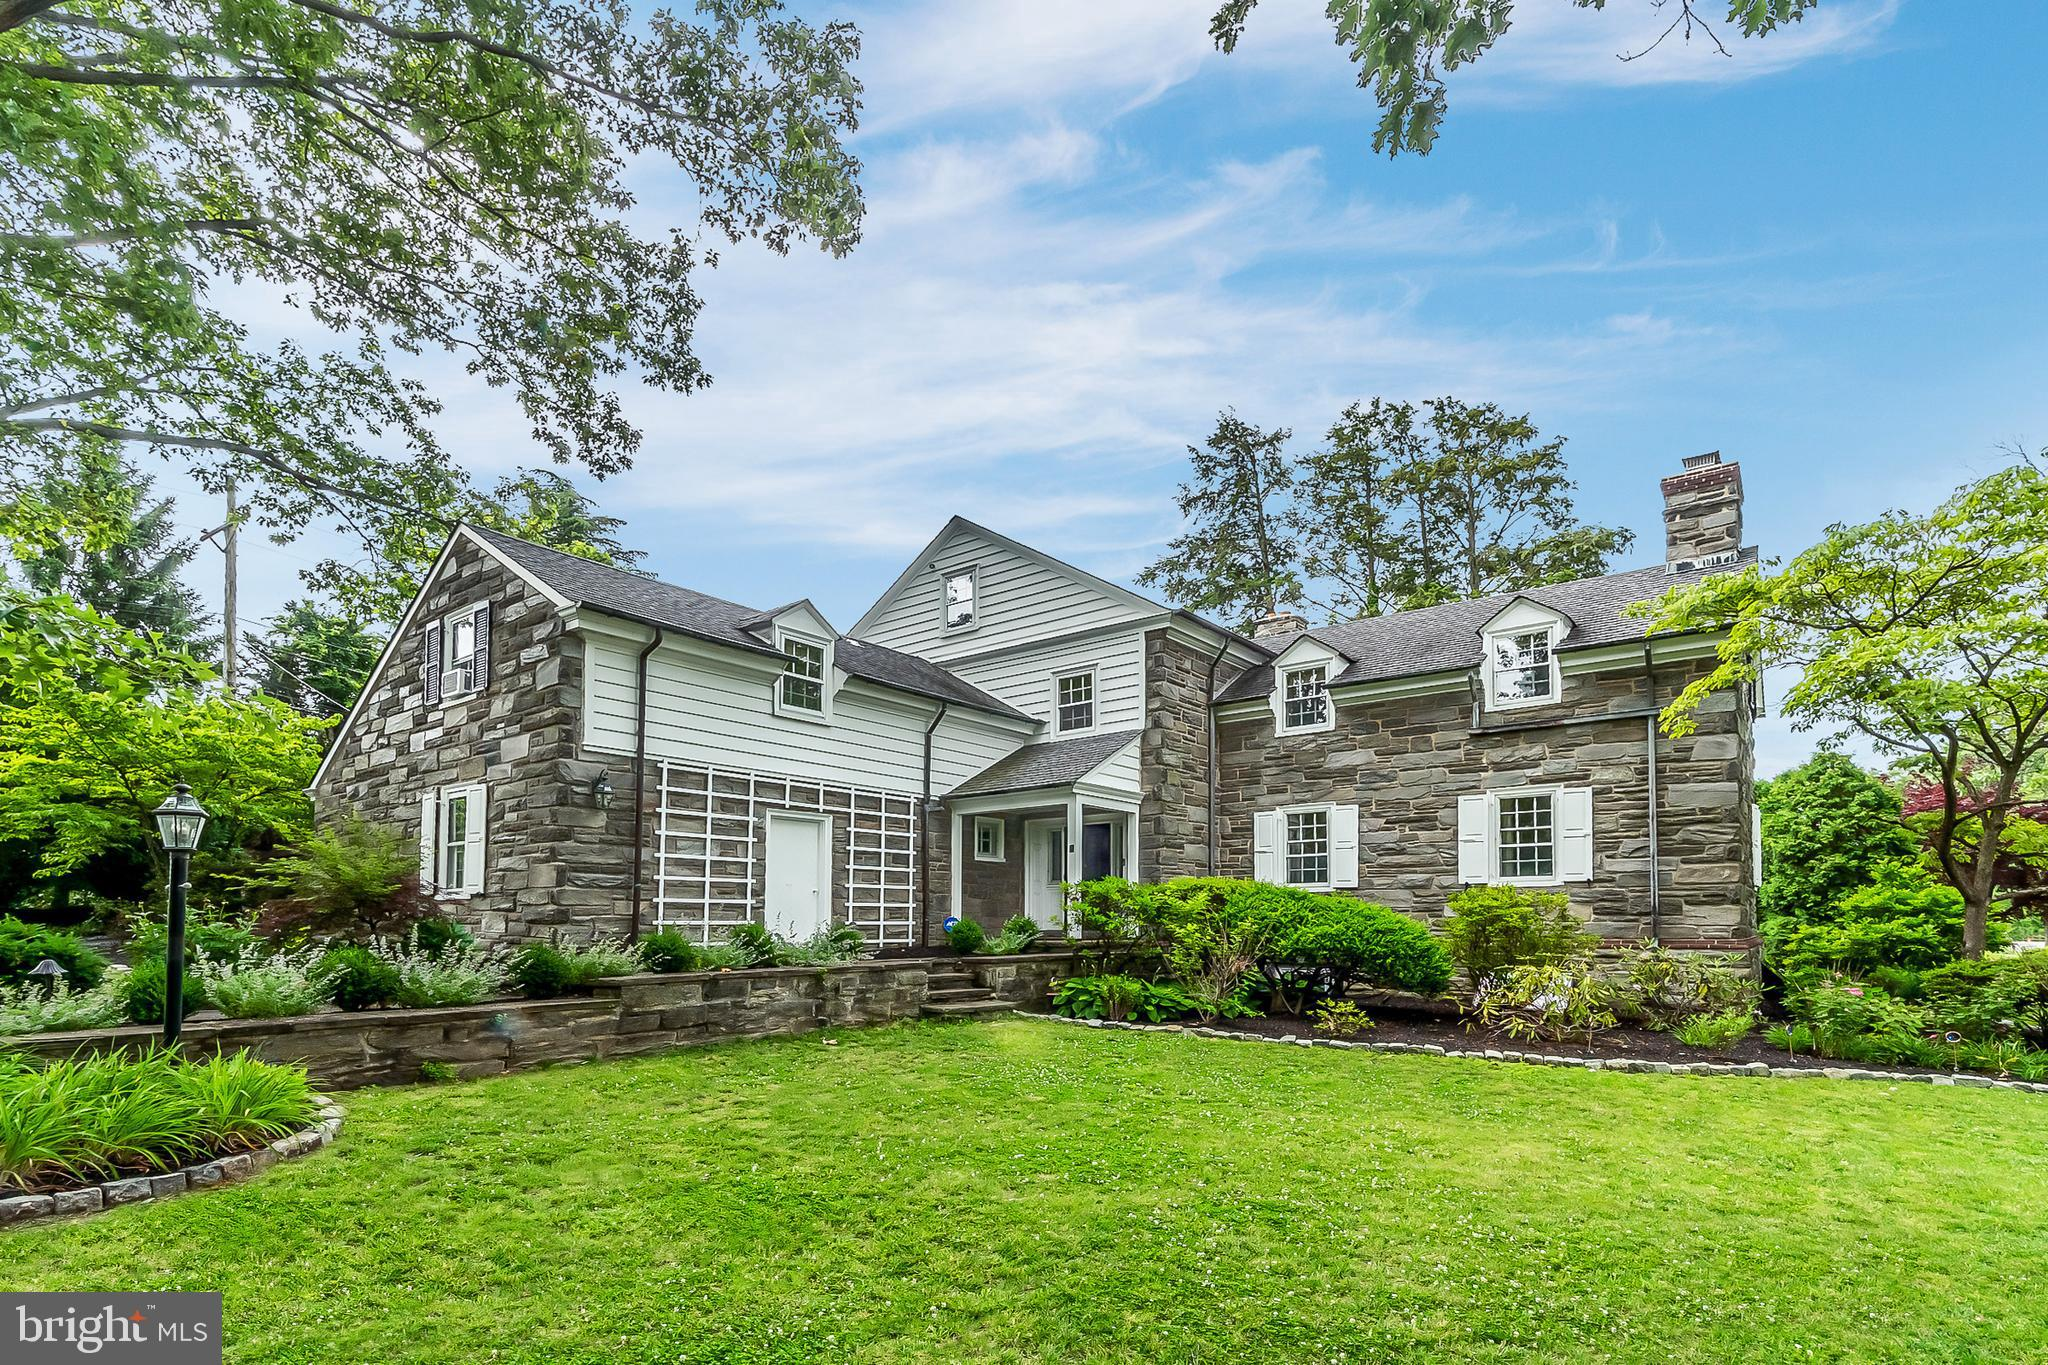 Rarely available renovated & updated corner lot 3825 SQ FT, 4 bedroom, 4.5 bath stately Stone Colonial home w/ 3 PA Fieldstone patios & walls, 2 fireplaces & porches, 1st floor office, sun room, finished walkout lower level, 2 car garage in tree lined & sought after Alapocas. Over $150,000 in new upgrades just done by the current homeowner. Only a job transfer makes this home available, just the 4th time to hit the market since being built in 1938. New upgrades: just gutted to the studs & enlarged Gourmet Cooks Kitchen w/ Professional Wolf 48 inch 6 burner/griddle gas range & DBL Convection oven & microwave, Sub Zero refrigerator, Asko dishwasher, 48 inch Best range hood, handmade custom Christiana Cabinetry wood cabinets & 6 seat island, custom Dark Walnut Oak Range Hood & Hardwood Floors, 2 Pantries, Crown & Chair Rail molding, handmade Hex Clay backsplash tile, Marble, Stainless Steel & Butcher Block countertops, DBL Bowl sink, commercial kitchen faucet, disposal (Insinkerator), LED recessed, under cabinet, pendant lighting & dimmers. Refinished Dark Walnut Oak hardwood floors throughout. PA Fieldstone patios, sitting wall & walkways connecting the 3 patios. Professional landscaping w/ landscape, tree, walkway & home lighting. High Efficiency gas forced air heat & central air (Trane), 2 zone heating system, furnace humidifier (Aprilaire), driveway & driveway drain system, sidewalk, insulated Carriage style garage doors & automated garage openers (Liftmaster). Light fixtures & ceiling fans. Professionally painted interior & exterior. Upgrades include: master bath (radiant floor heat, Calcutta, Statuario, Thassos, Carrara Marble sink, floor & wall tile, shower, tub, vanity, DBL sinks, Kohler fixtures, LED recessed & sconce lighting), 2nd full bath (radiant floor heat, Calcutta, Statuario, Thassos, Carrara Marble sink, floor & wall tile, shower, tub, vanity, sink, Kohler fixtures, LED recessed & sconce lighting), 3rd full bath (shower, tub, Kohler fixtures, ceramic 